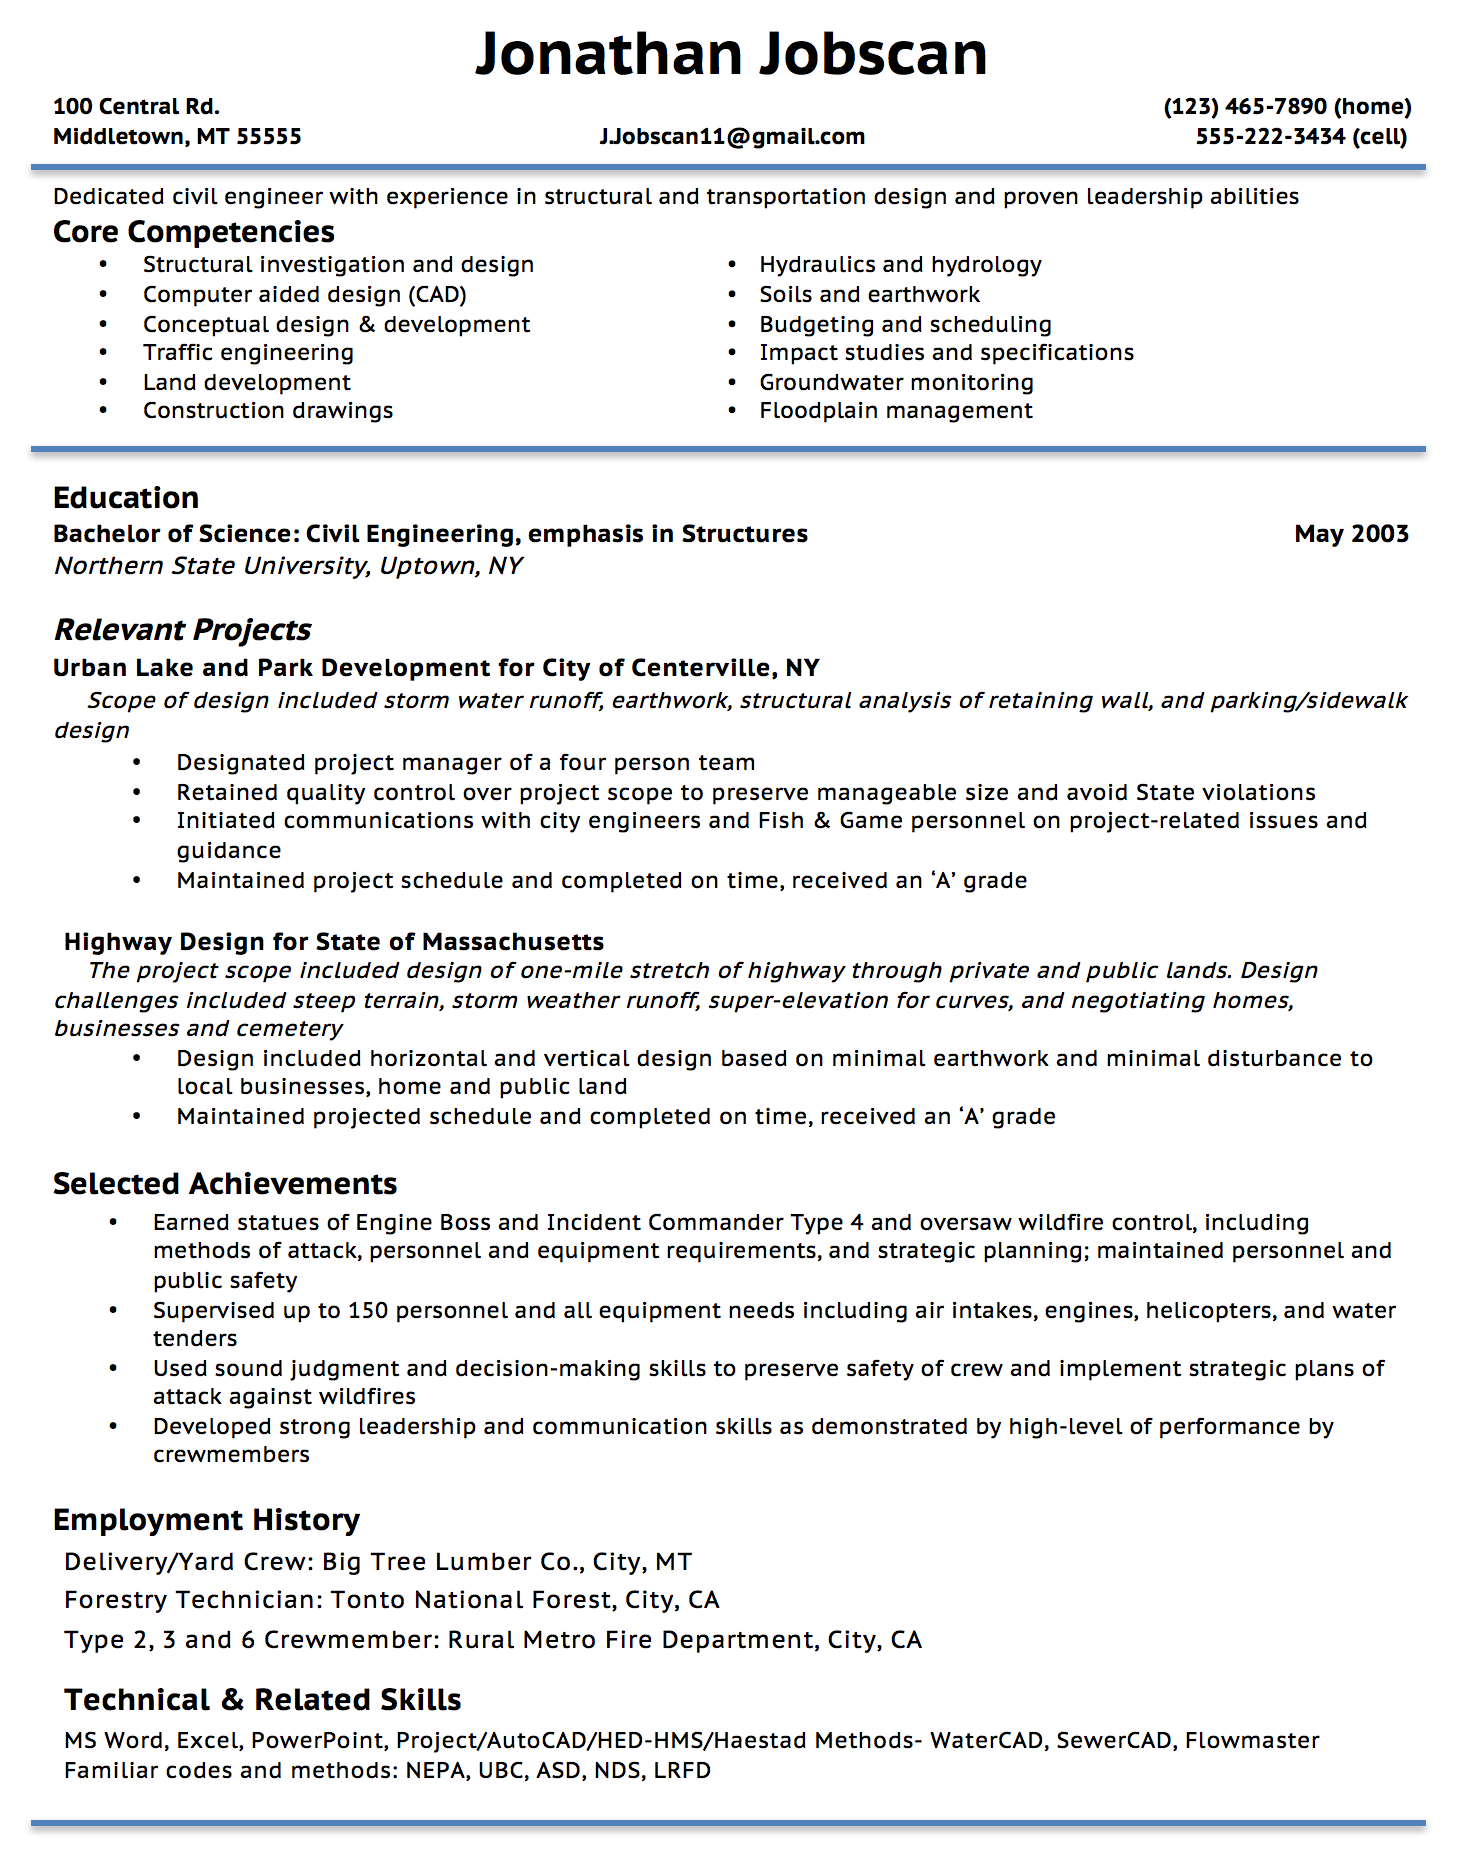 Opposenewapstandardsus  Outstanding Resume Writing Guide  Jobscan With Exciting Example Of A Functional Resume Format With Nice Dance Teacher Resume Also Nurse Resume Objective In Addition Online Resume Service And Resume Photo As Well As Sample Business Resume Additionally Barney Stinson Video Resume From Jobscanco With Opposenewapstandardsus  Exciting Resume Writing Guide  Jobscan With Nice Example Of A Functional Resume Format And Outstanding Dance Teacher Resume Also Nurse Resume Objective In Addition Online Resume Service From Jobscanco